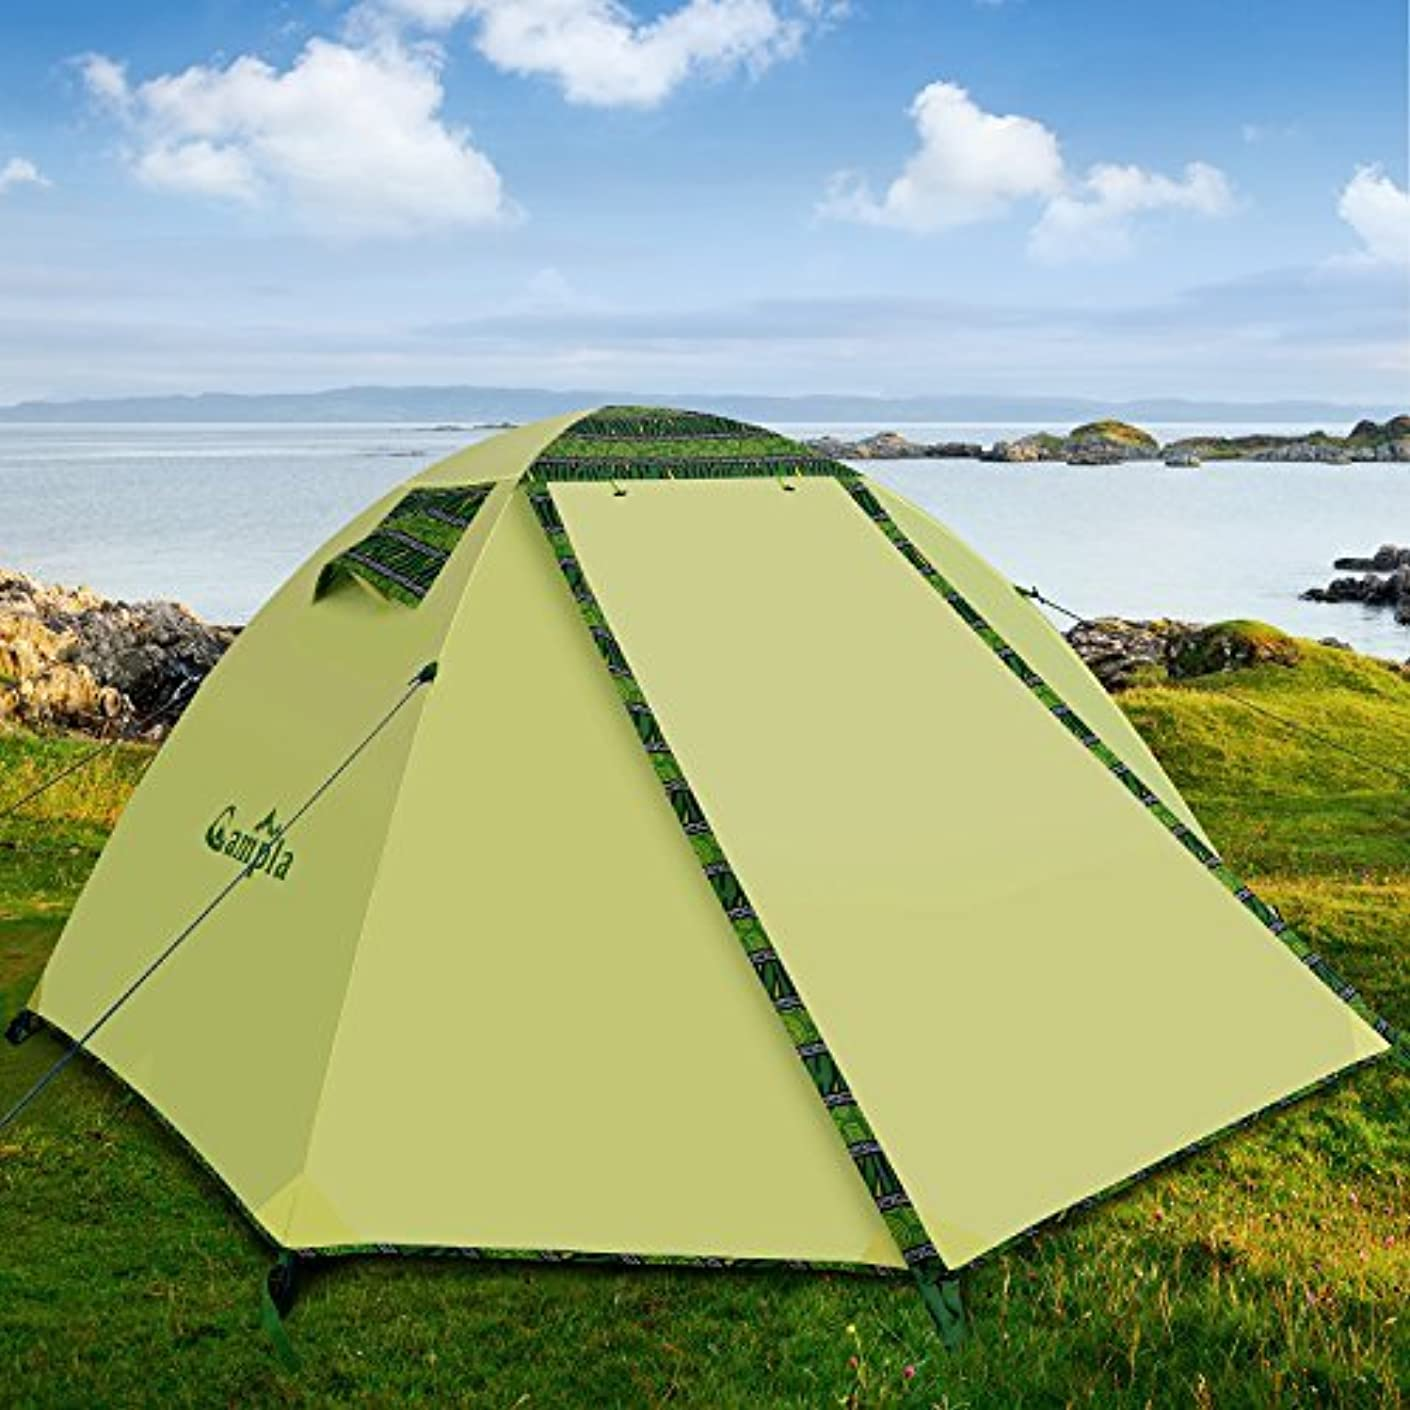 想起オートメーションうんCampla Tent for Camping Outdoors,Backpacking Tents with LED Fit 2 3 Person 3 Season Lightweight Waterproof Tent for Family Mountaineering Hiking Traveling Easy Set-Up with Carrying Bag Green [並行輸入品]